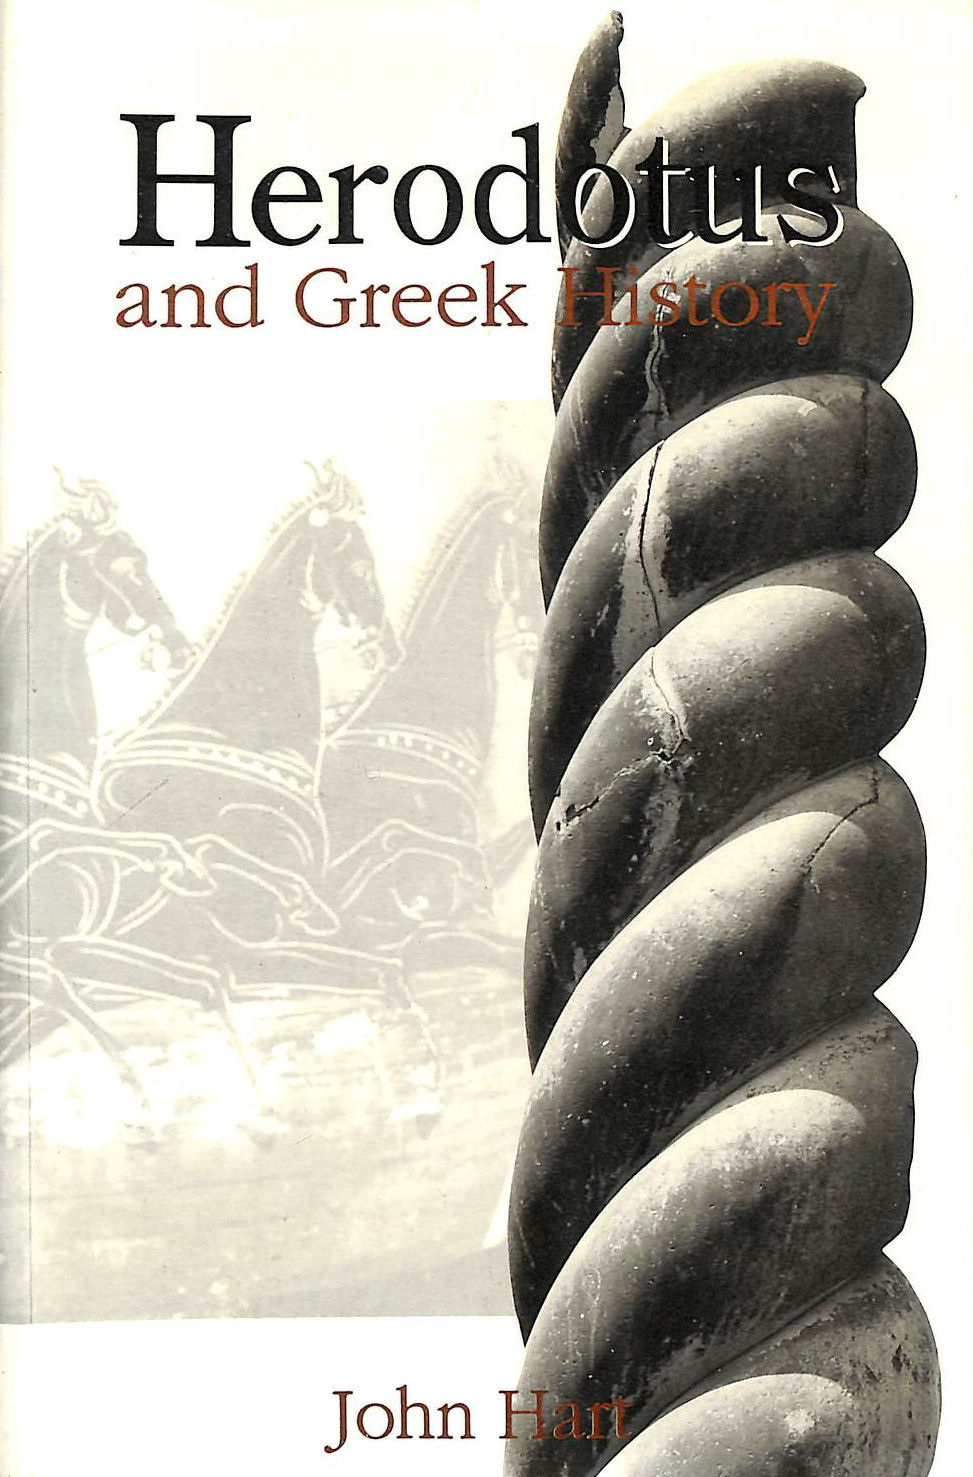 Image for Herodotus and Greek History